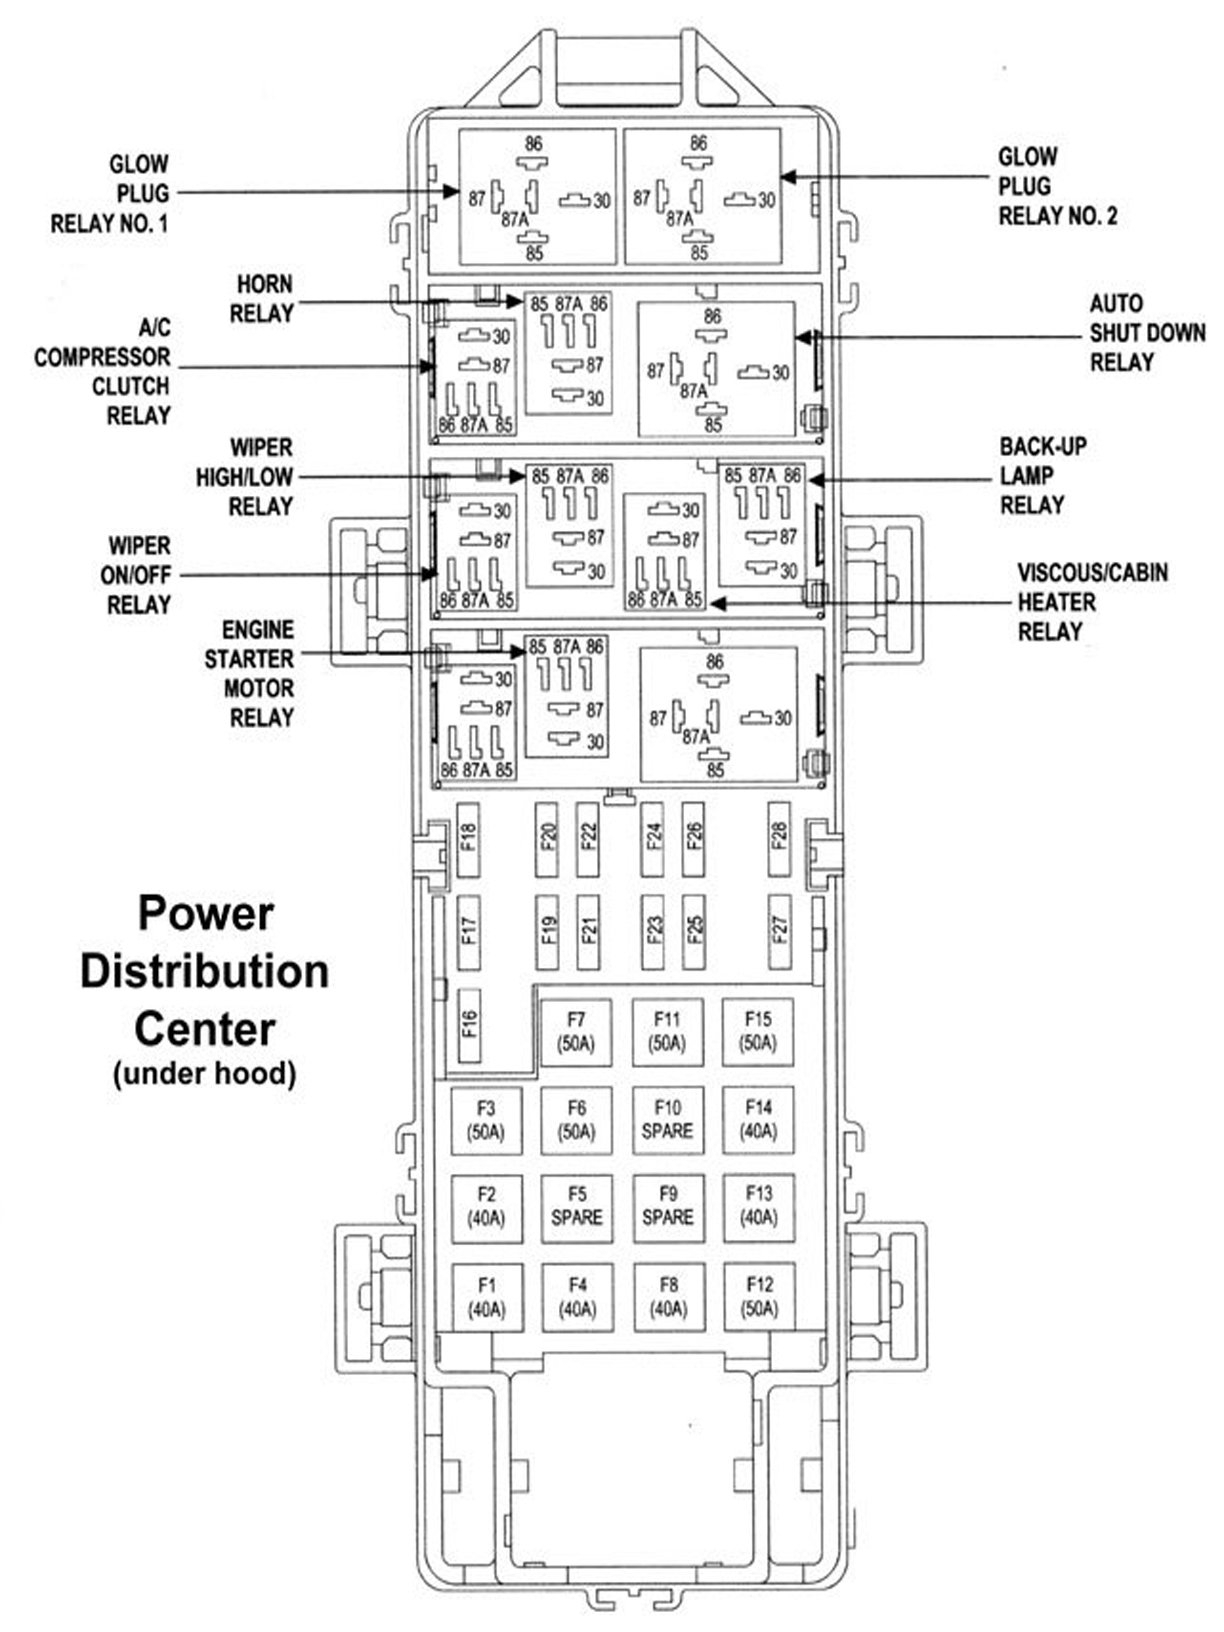 jeep grand cherokee wj 1999 to 2004 fuse box diagram cherokeeforum intended for 1998 jeep grand cherokee parts diagram jeep grand cherokee wj 1999 to 2004 fuse box diagram 2004 Jeep Fuse Box Diagram at readyjetset.co